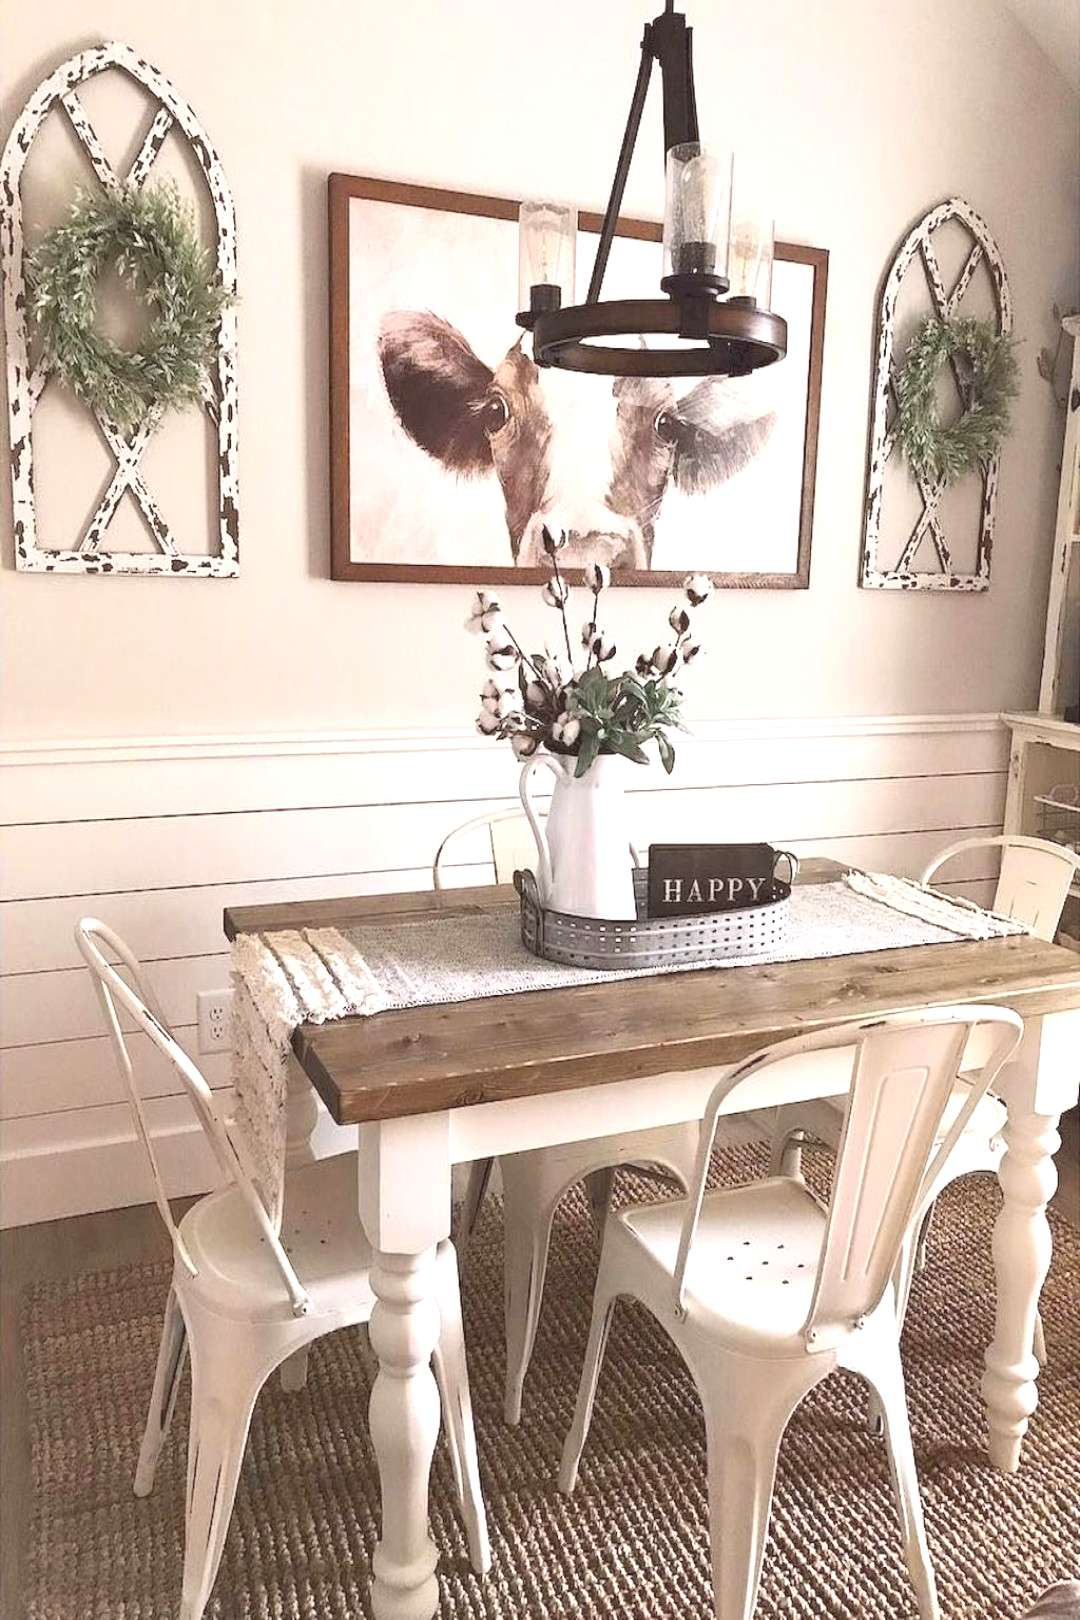 Like this idea and colors with whites and wood, just bigger table and bigger light